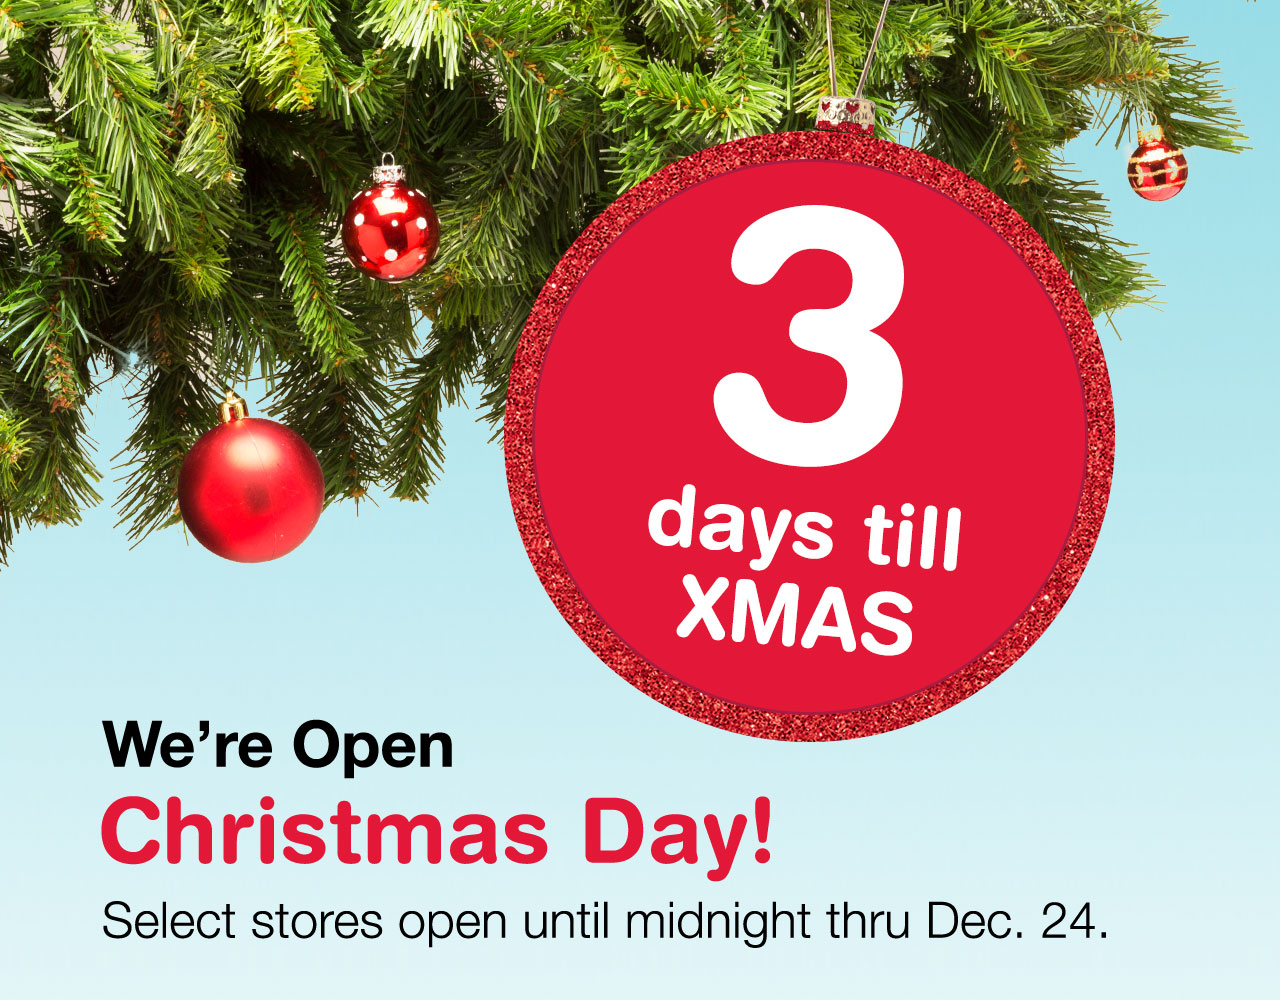 3 days till xmas were open christmas day select stores open until - Walgreens Open Christmas Day